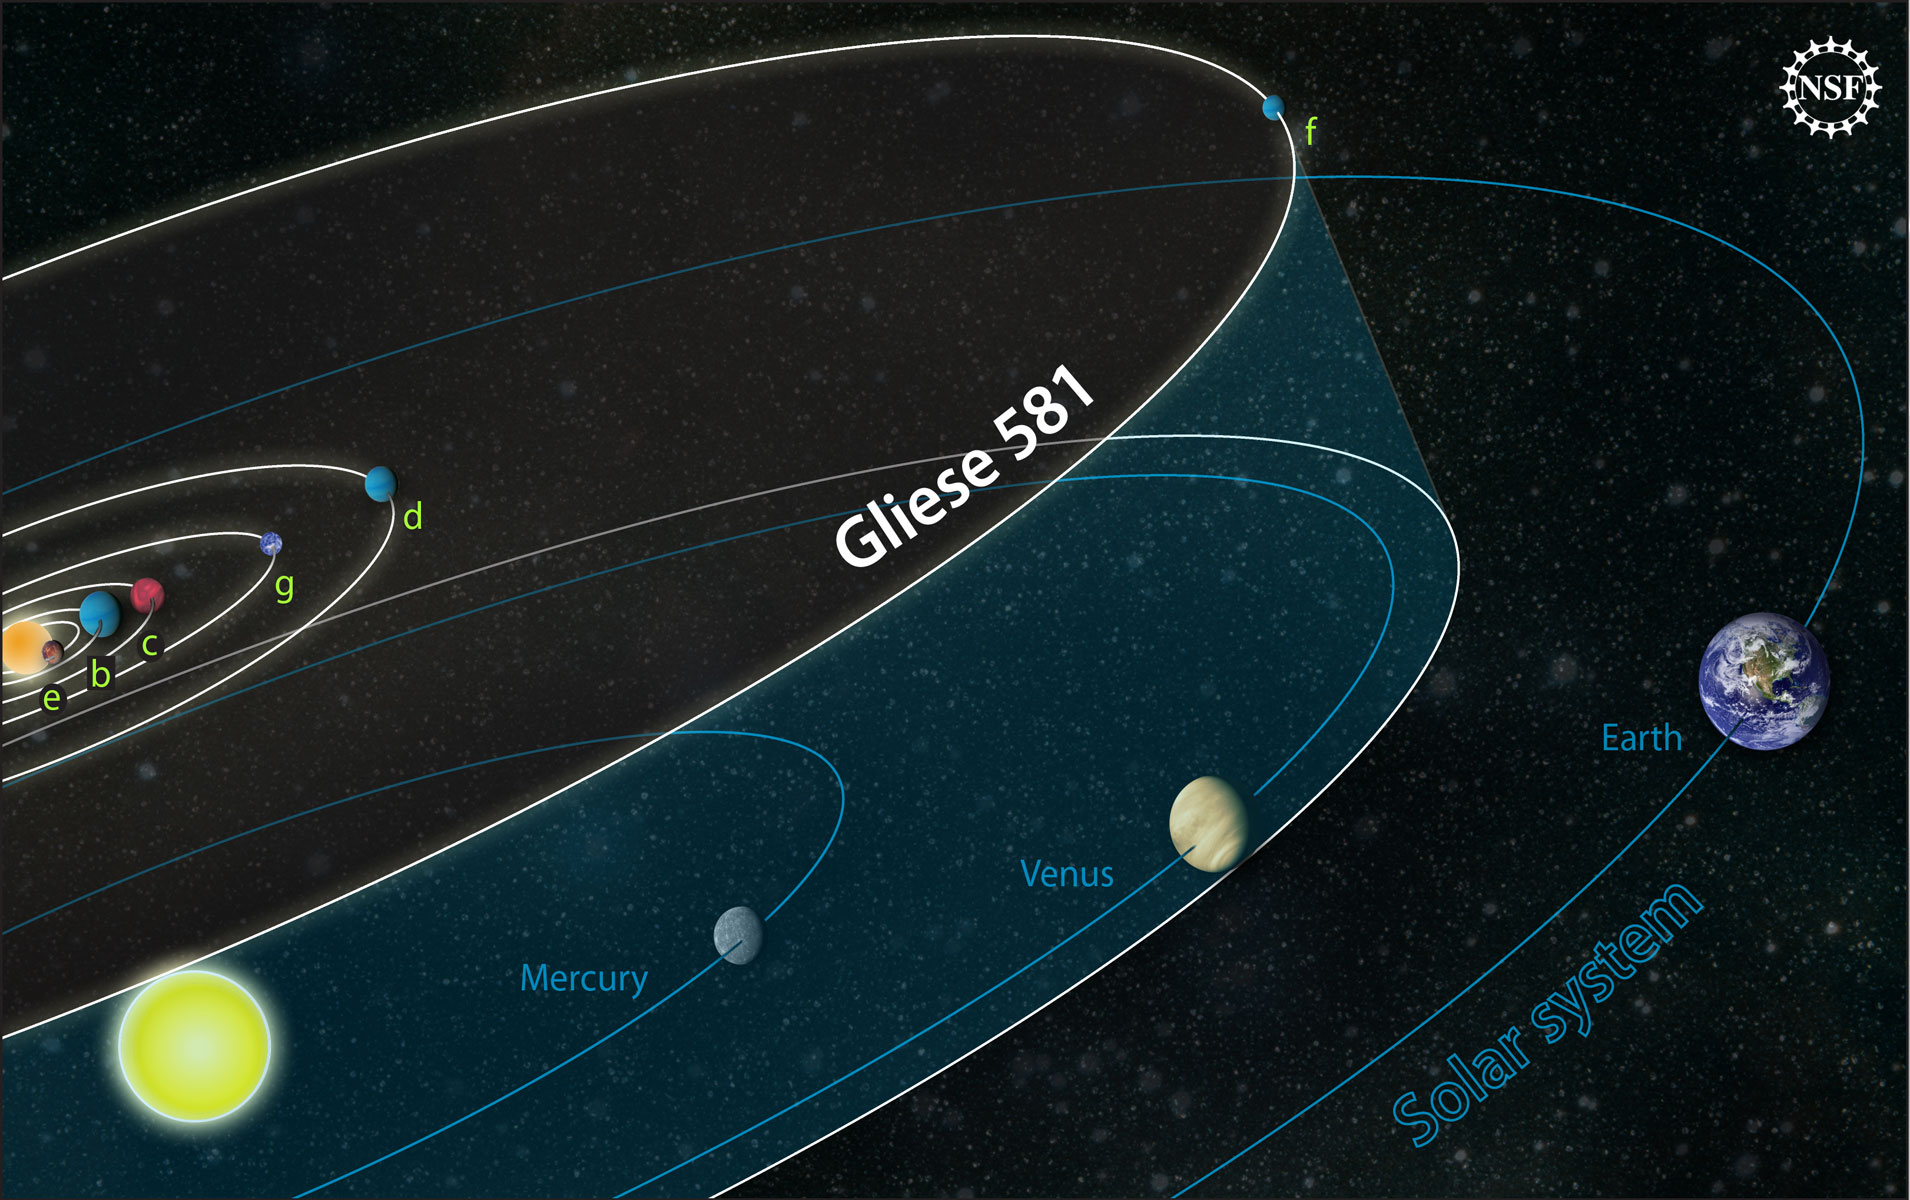 gliese 581 g real - photo #23